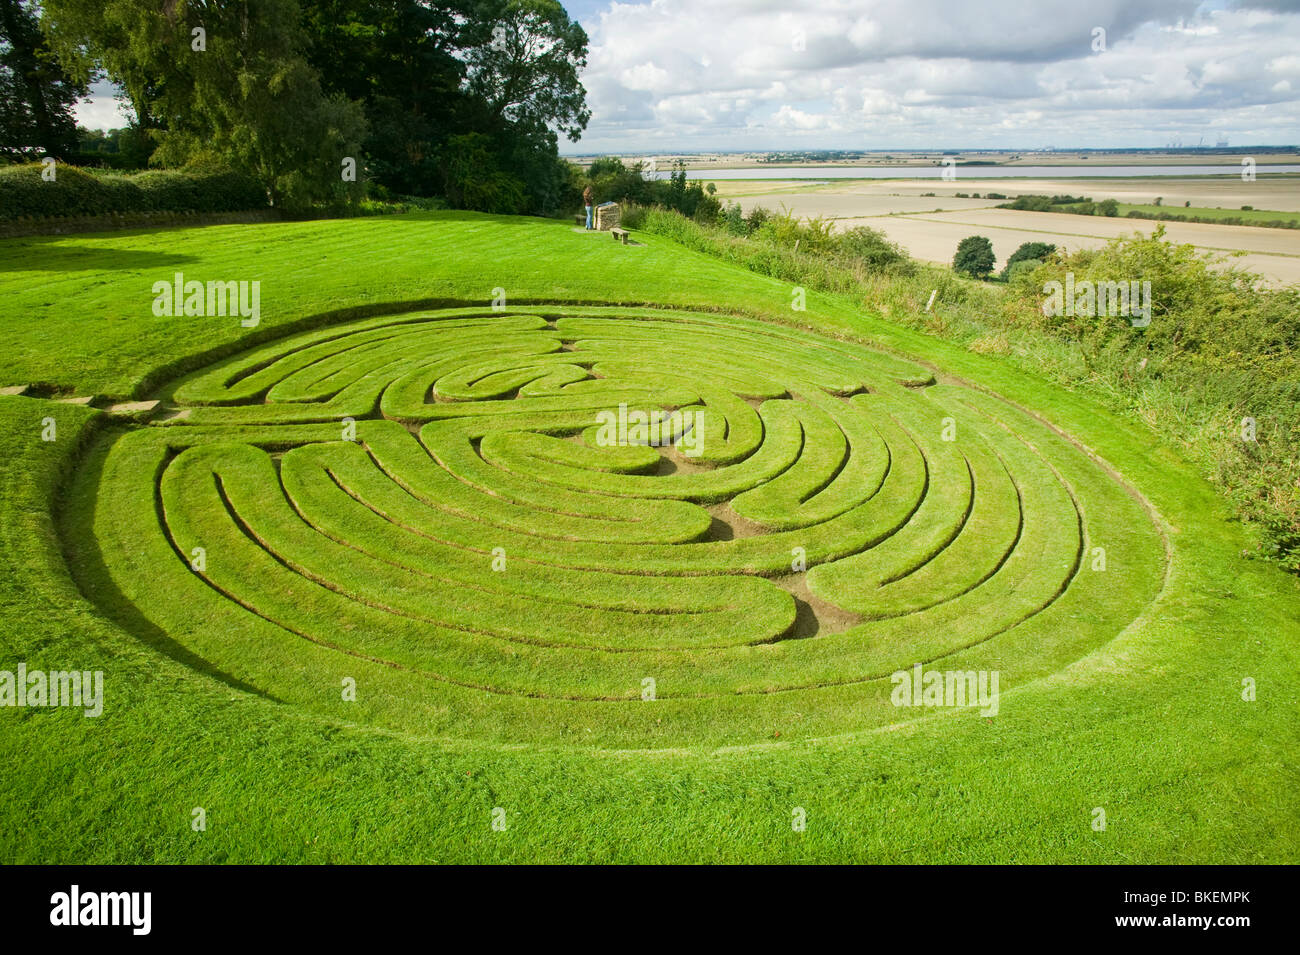 Julians Bower an ancient maze at Alkborough on the Humber Estuary. - Stock Image